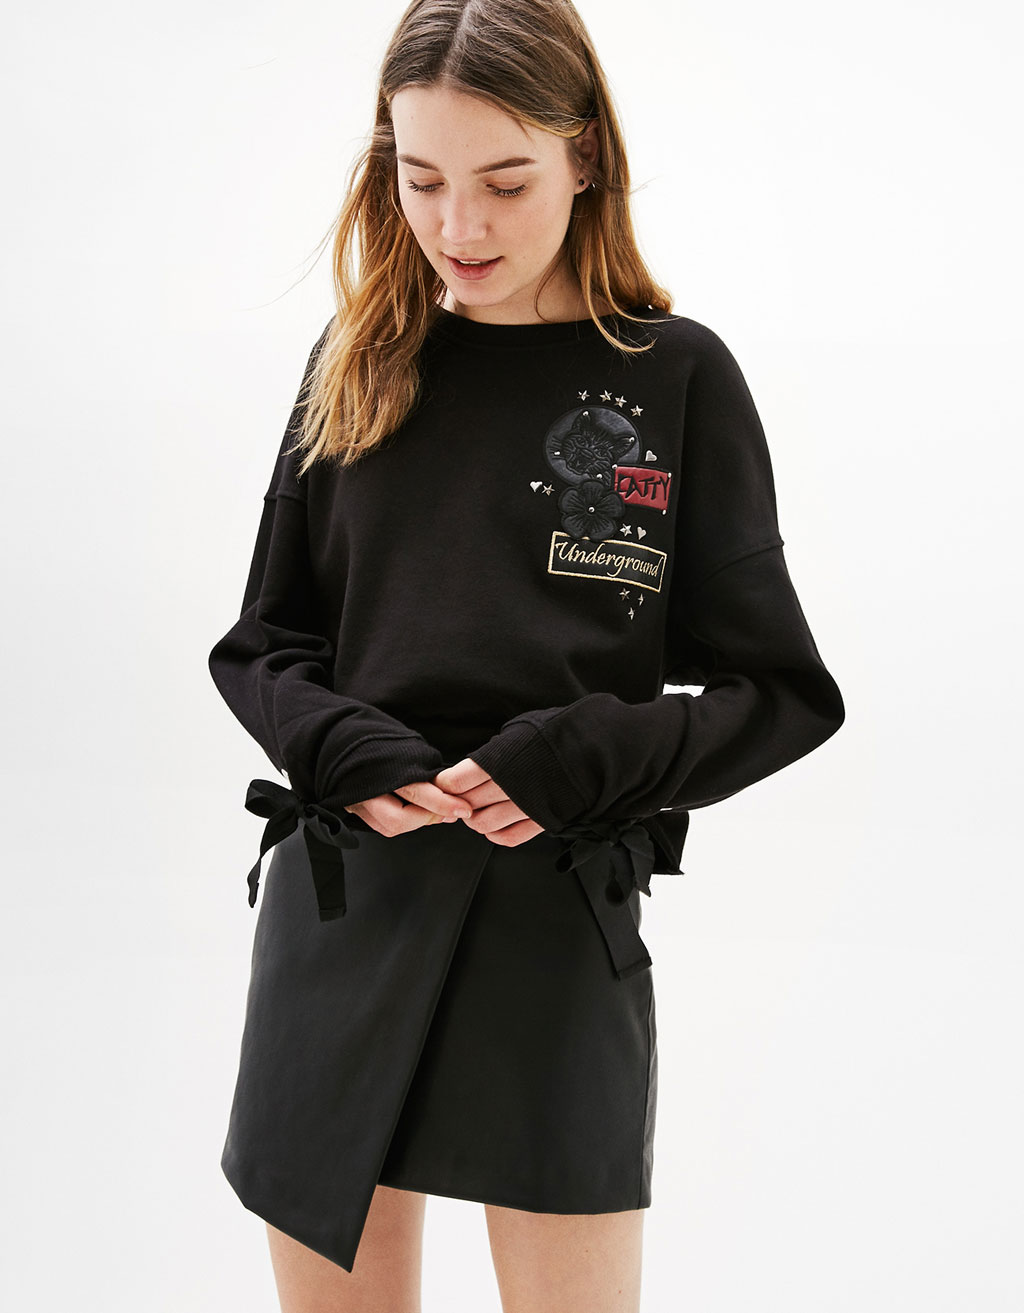 Cropped sweatshirt with patches and sleeves with bow